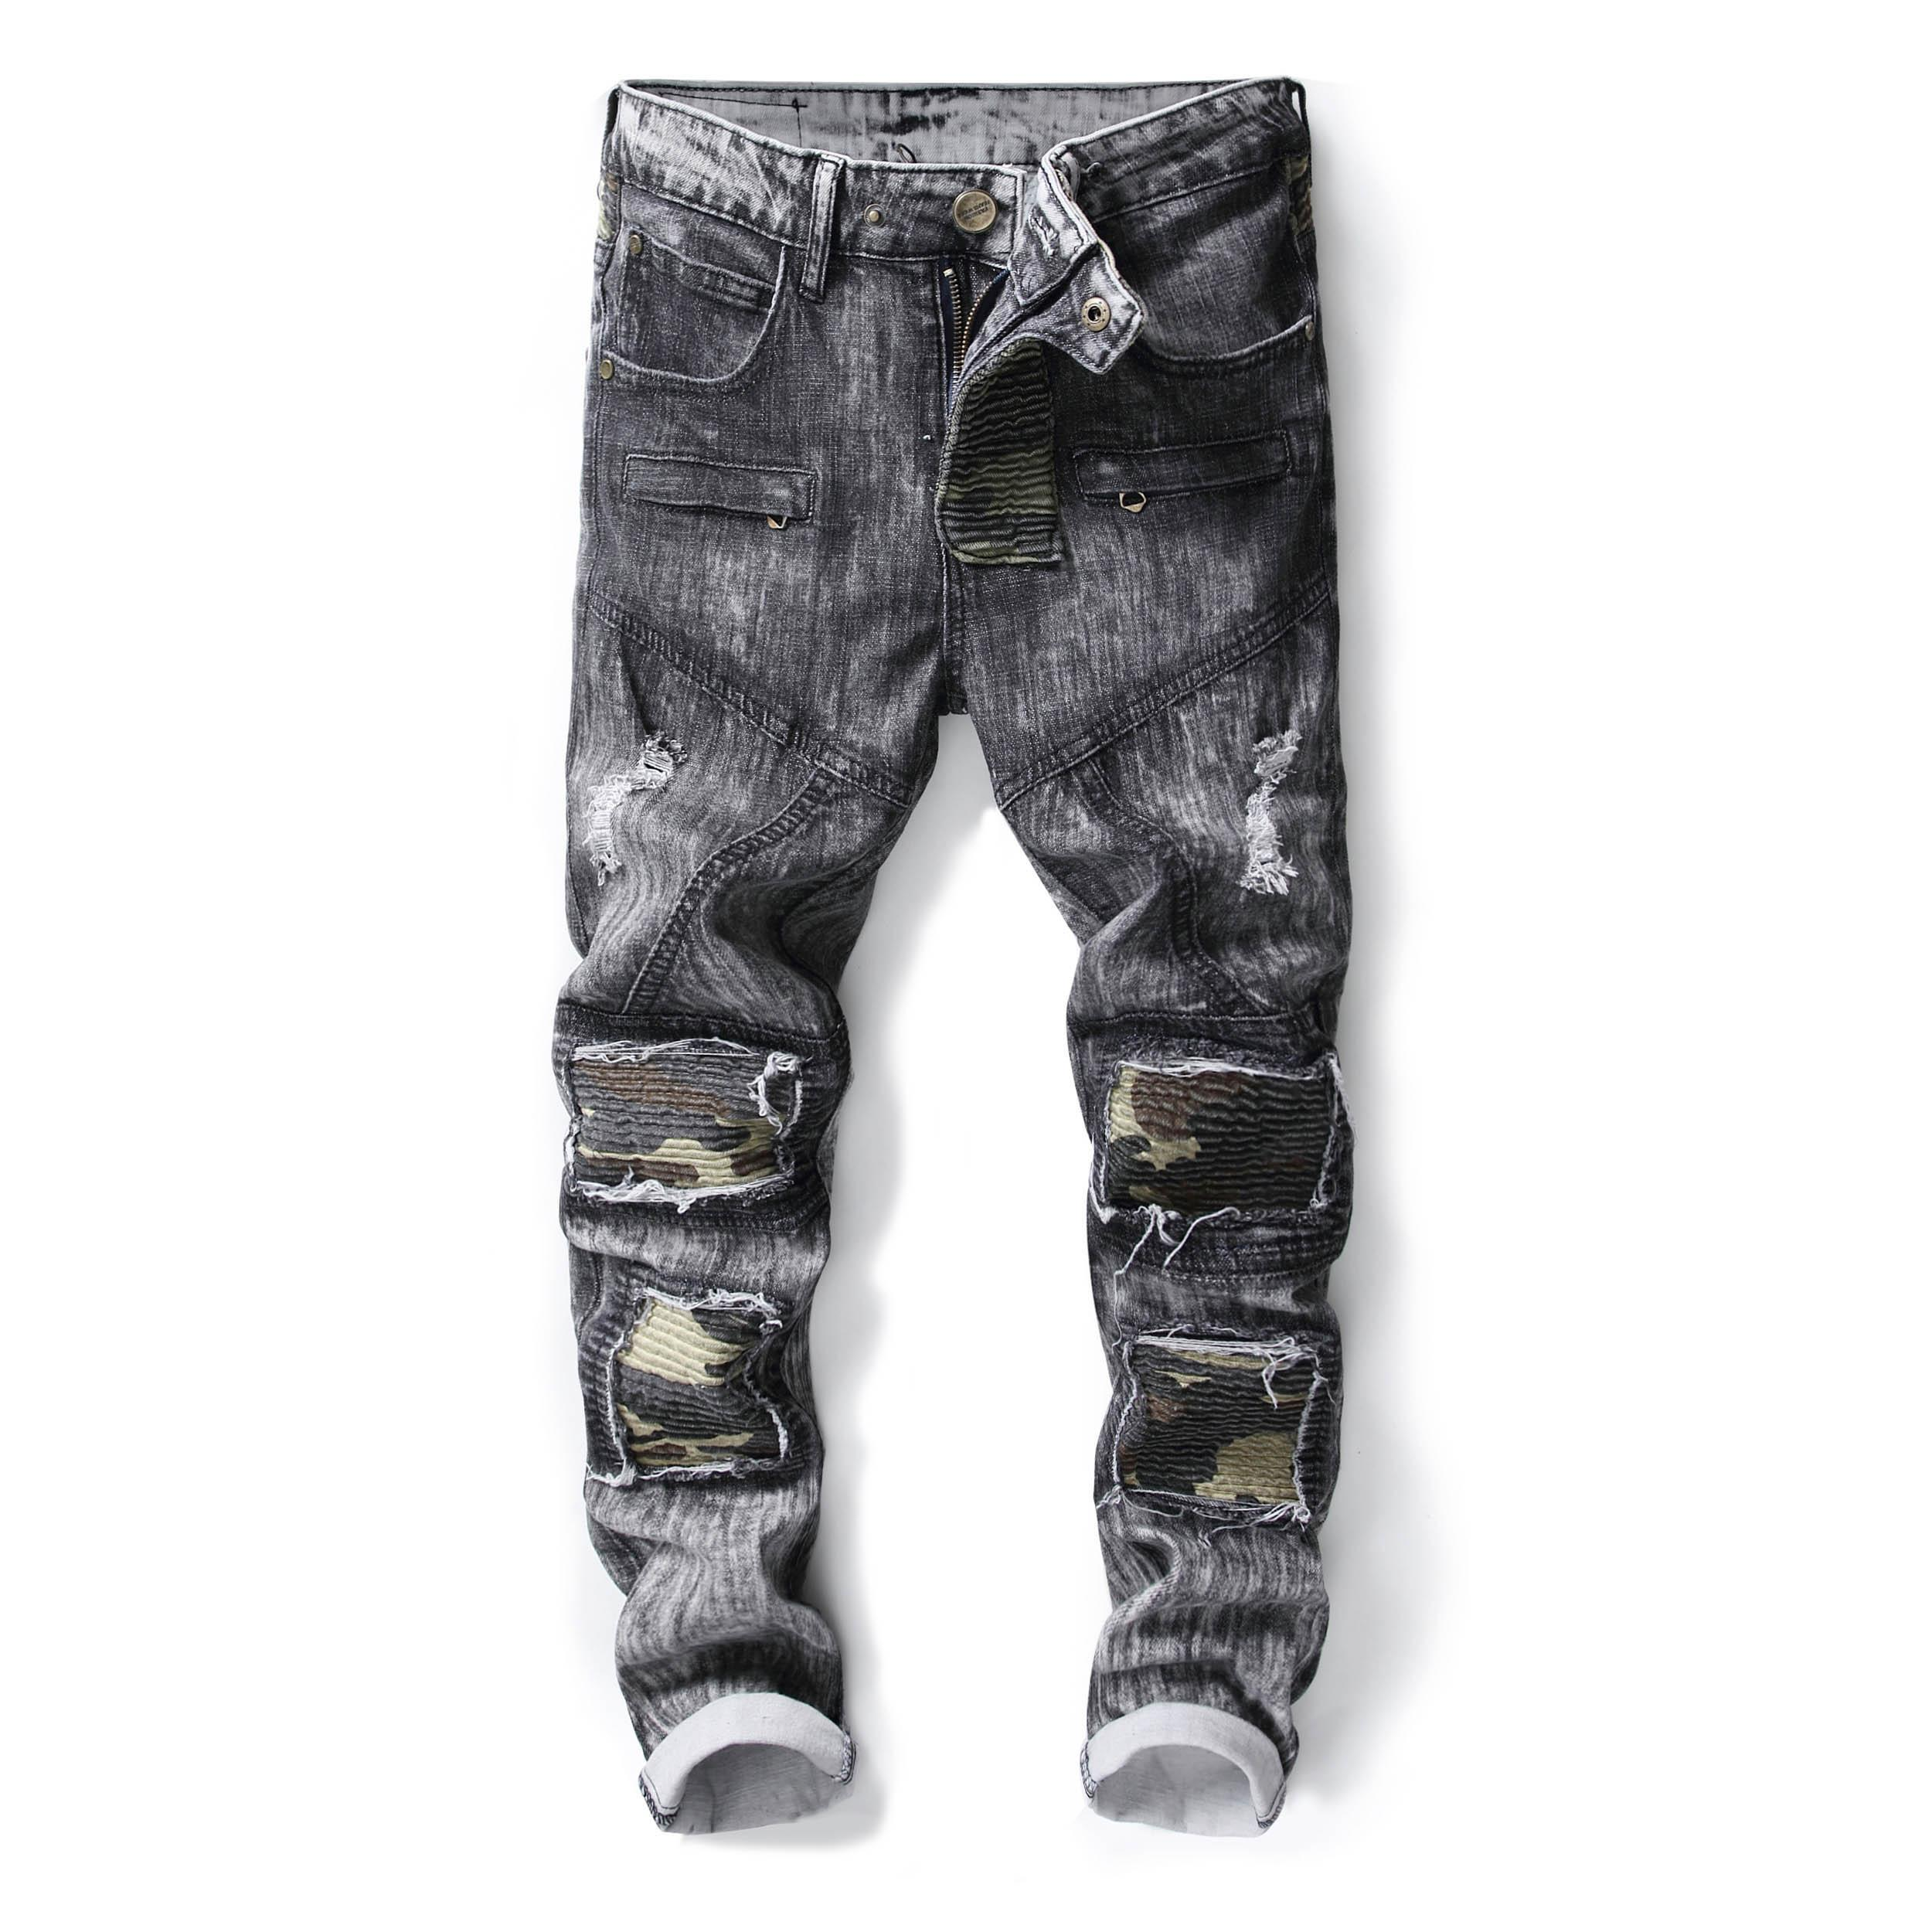 2019 Men Snow Wash Gray Army Camo Patched Jeans Long Pants Fashion Cool  Trendy Washed Color From Duixinju 233d1494b